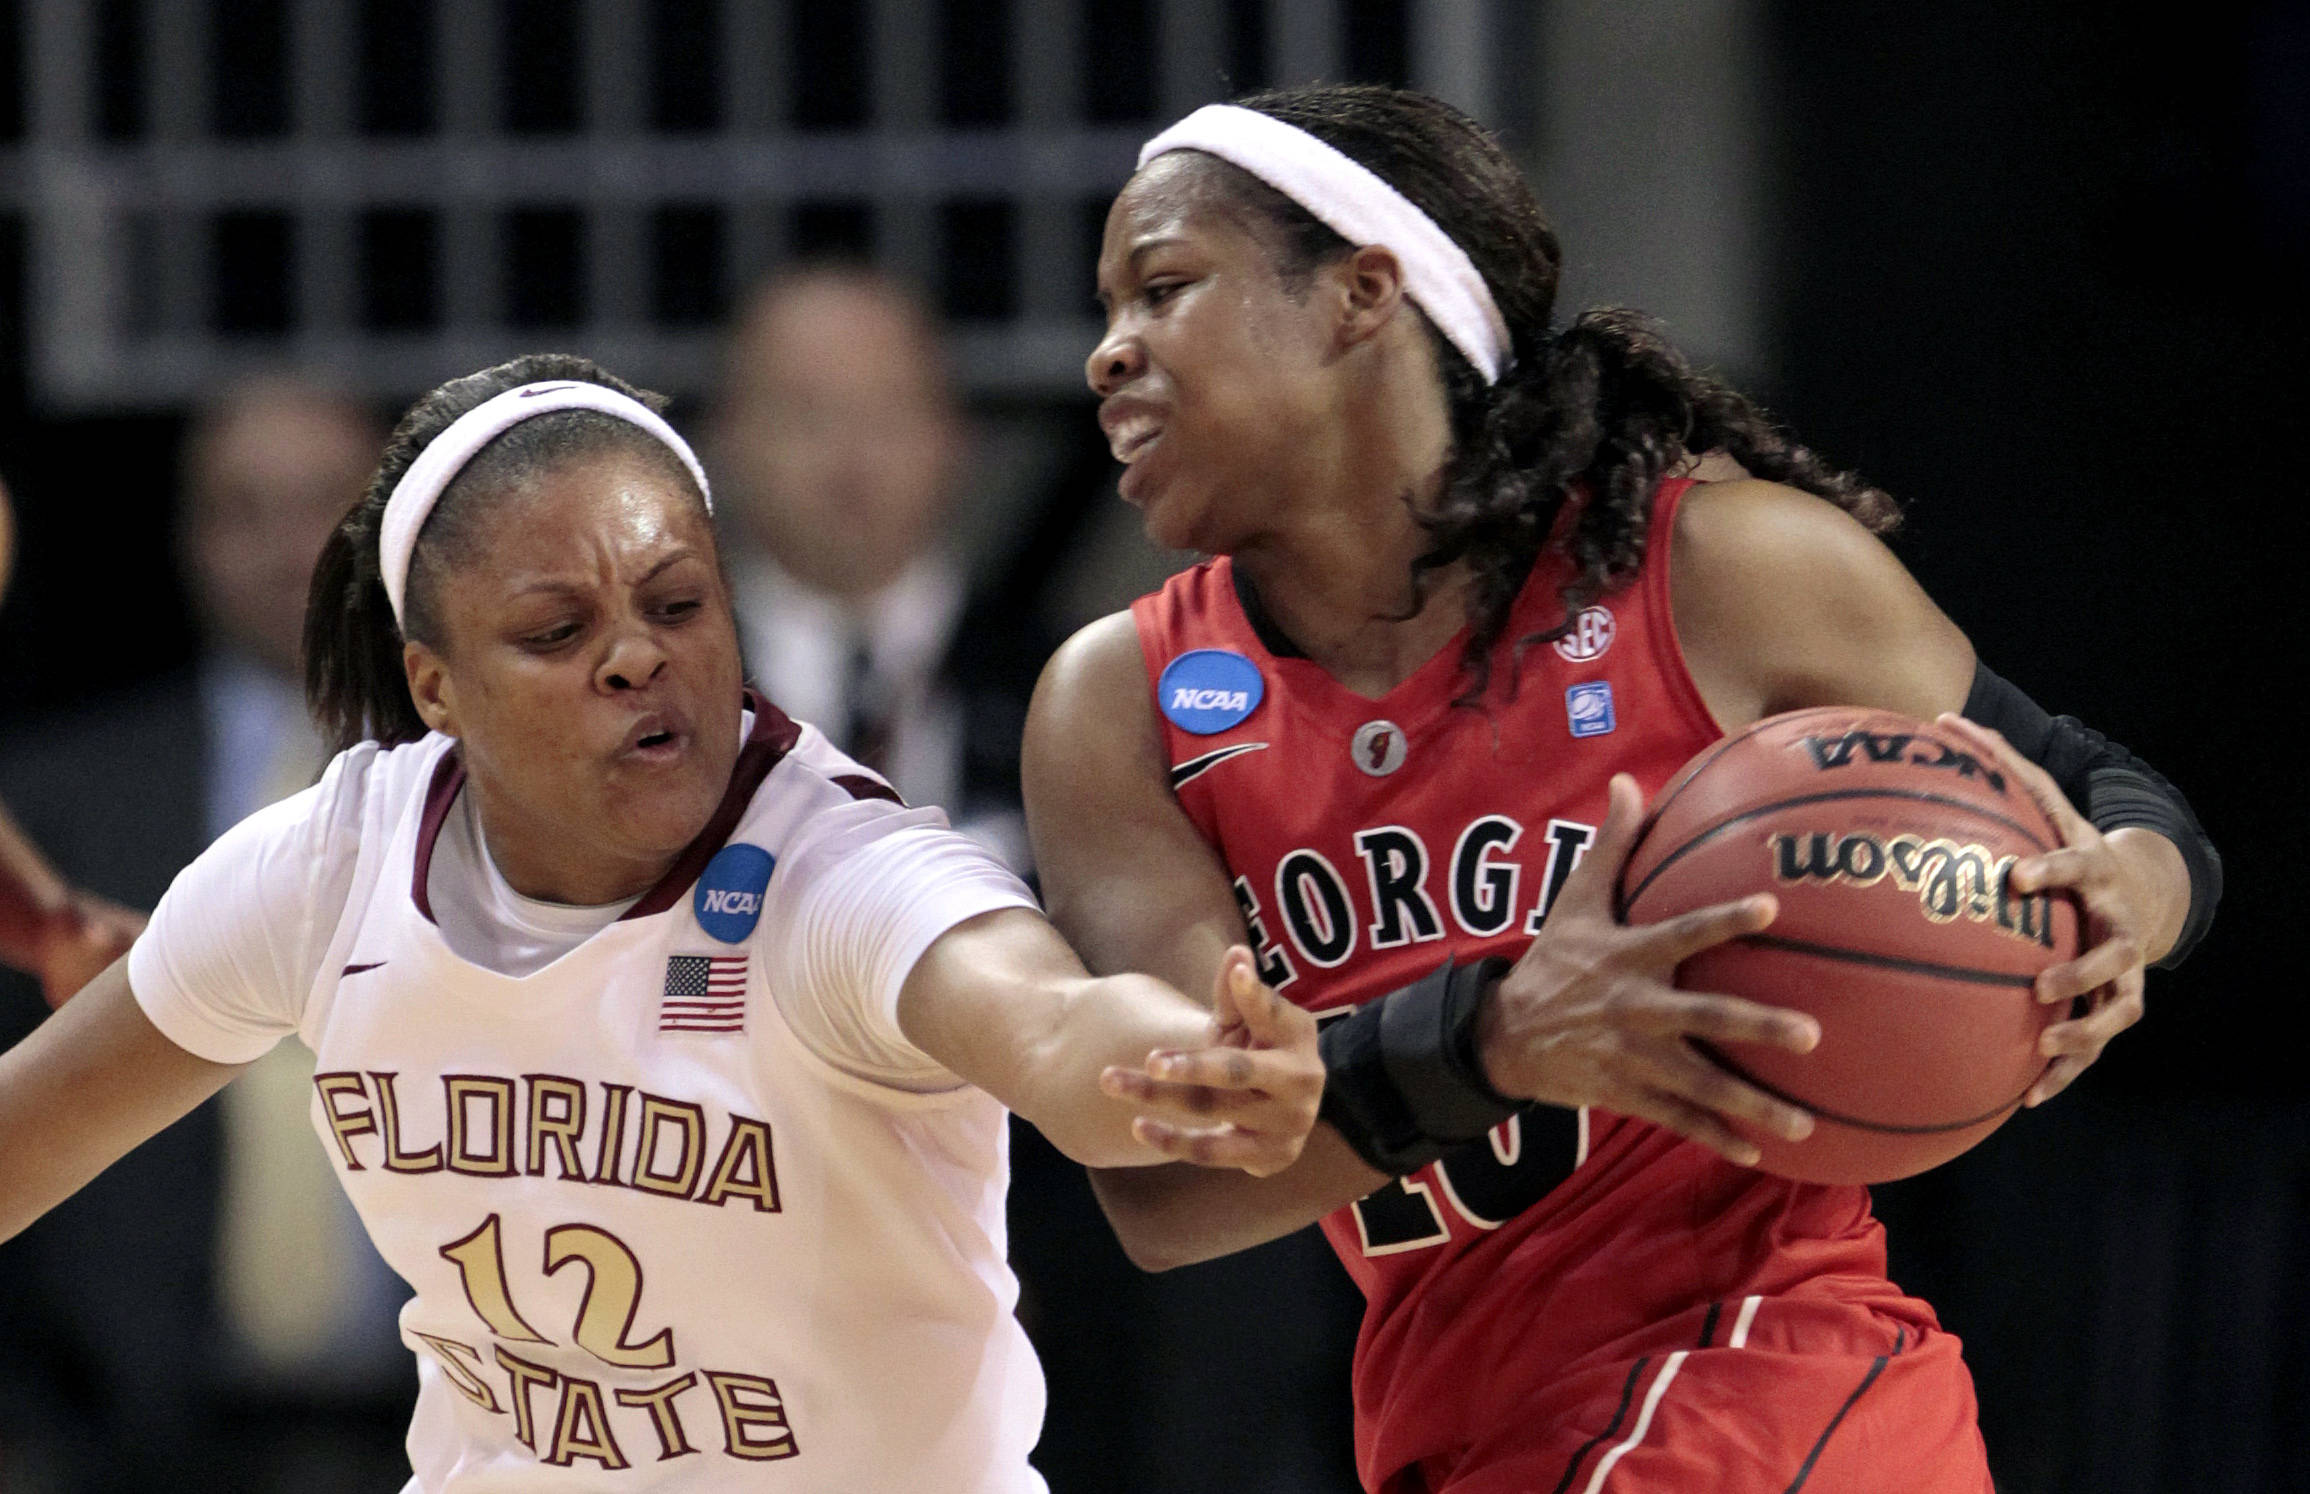 Florida State's Courtney Ward (12) tries to steal the ball from Georgia's Jasmine James (10) in the first half of a second-round NCAA women's college basketball tournament game at Auburn Arena in Auburn, Ala., Tuesday, March 22, 2011. (AP Photo/Dave Martin)